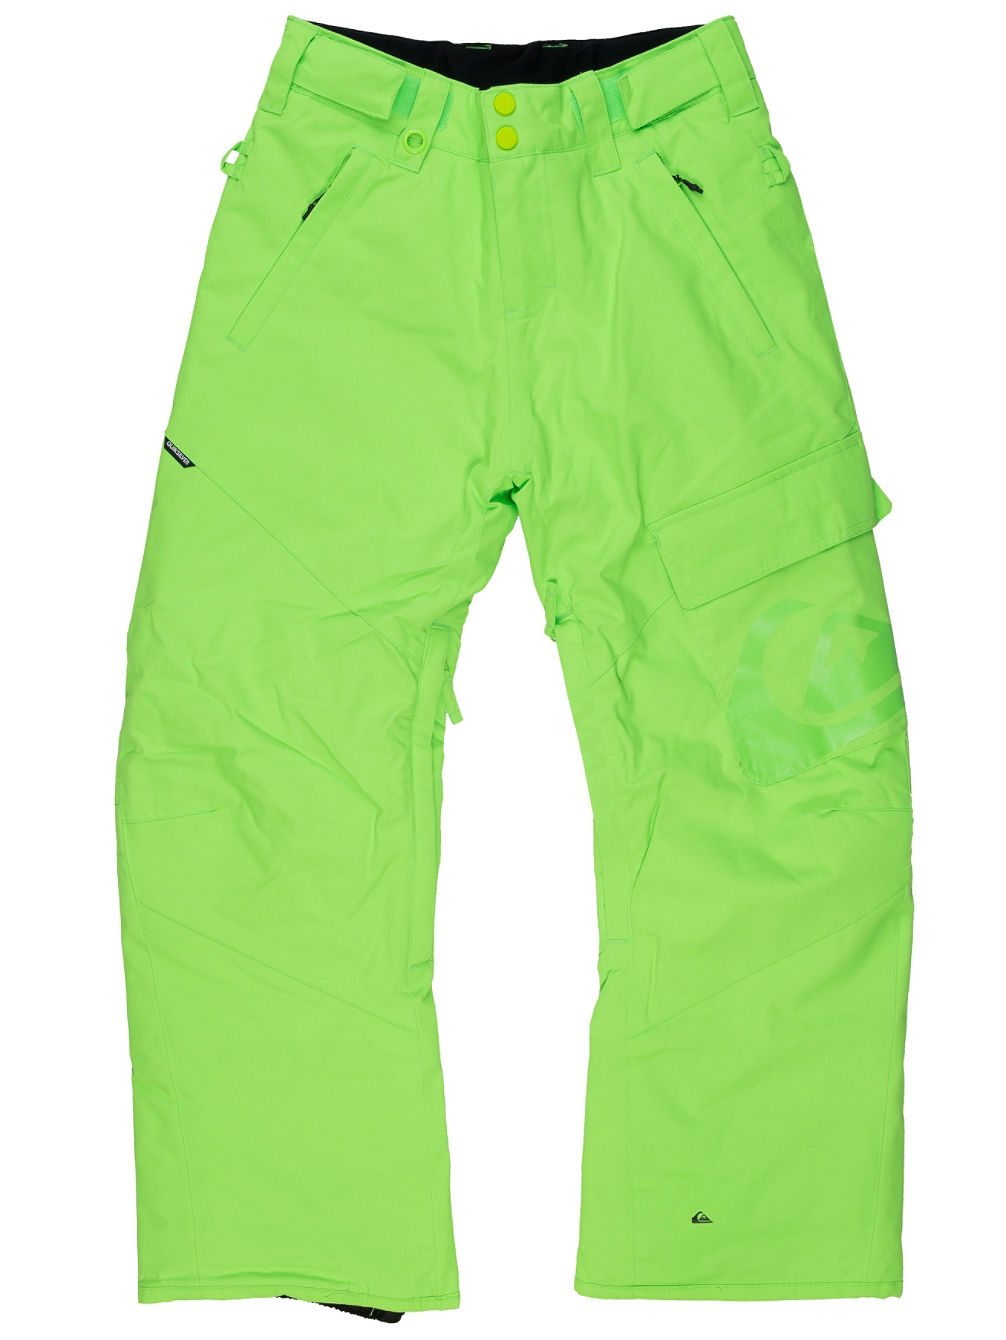 quiksilver-county-pants-boys